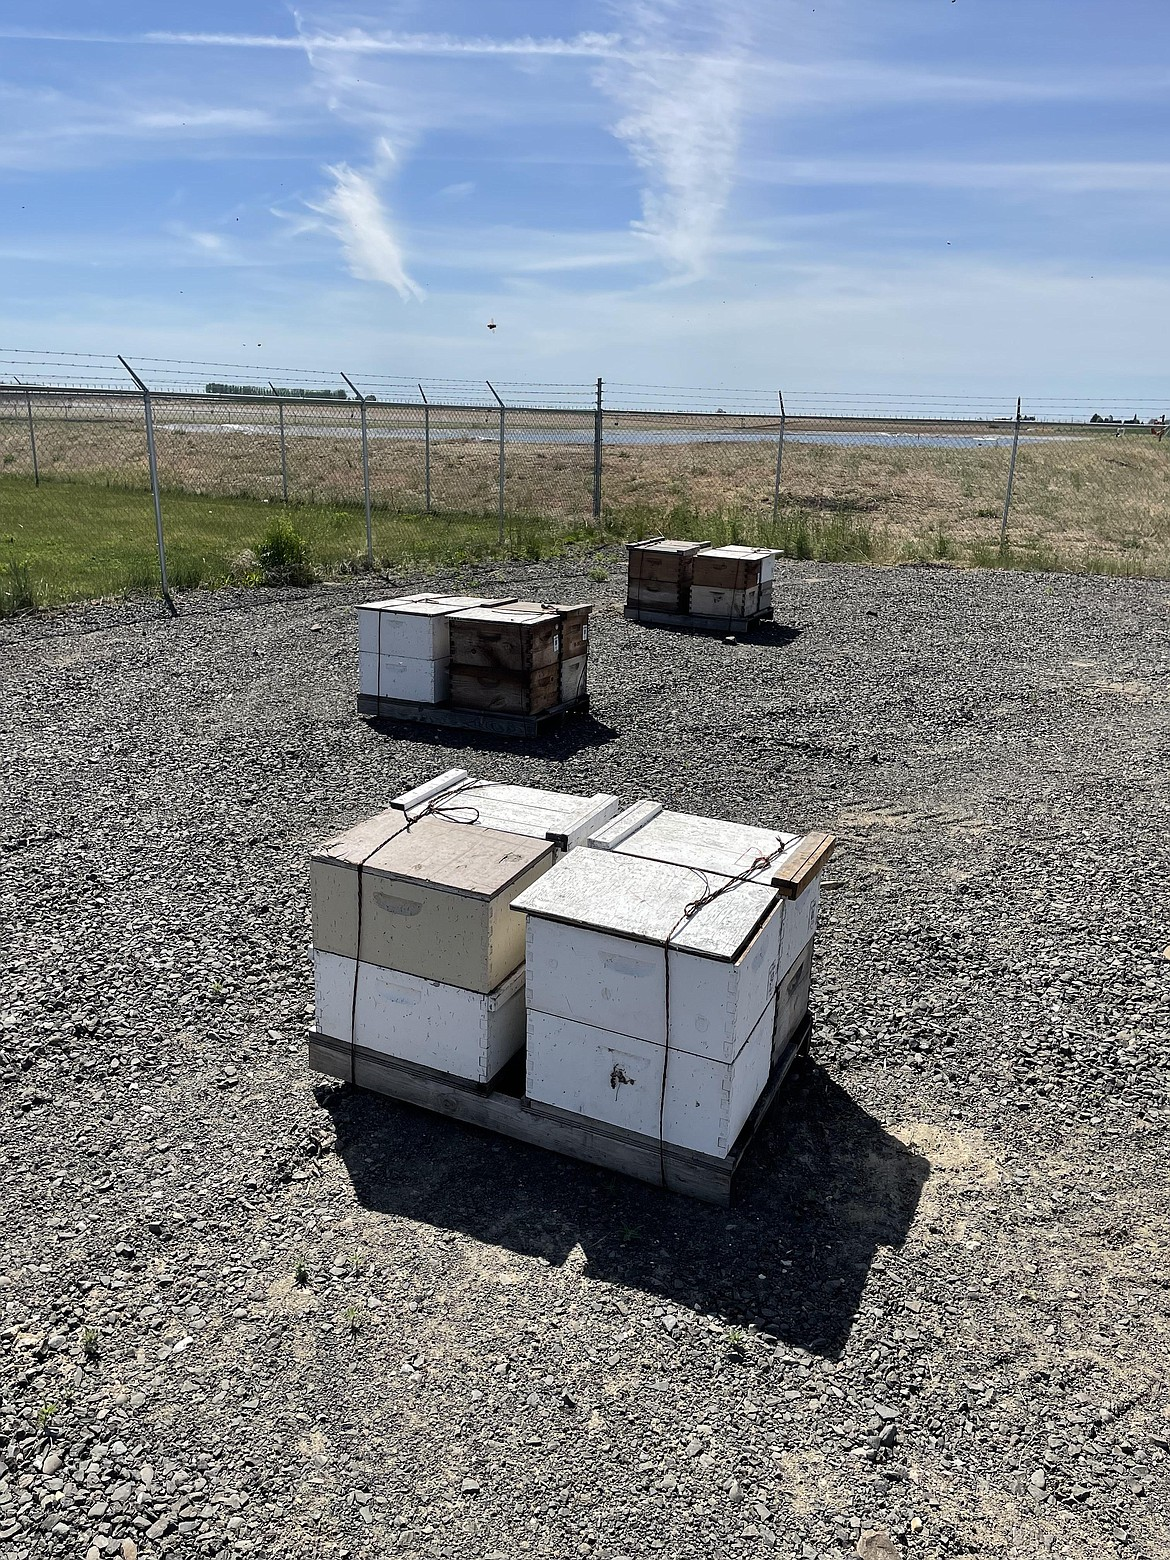 Beehives newly returned from California awaiting inspection at WSU's Honey Bee and Pollinator Research, Extension and Education Facility near Othello.